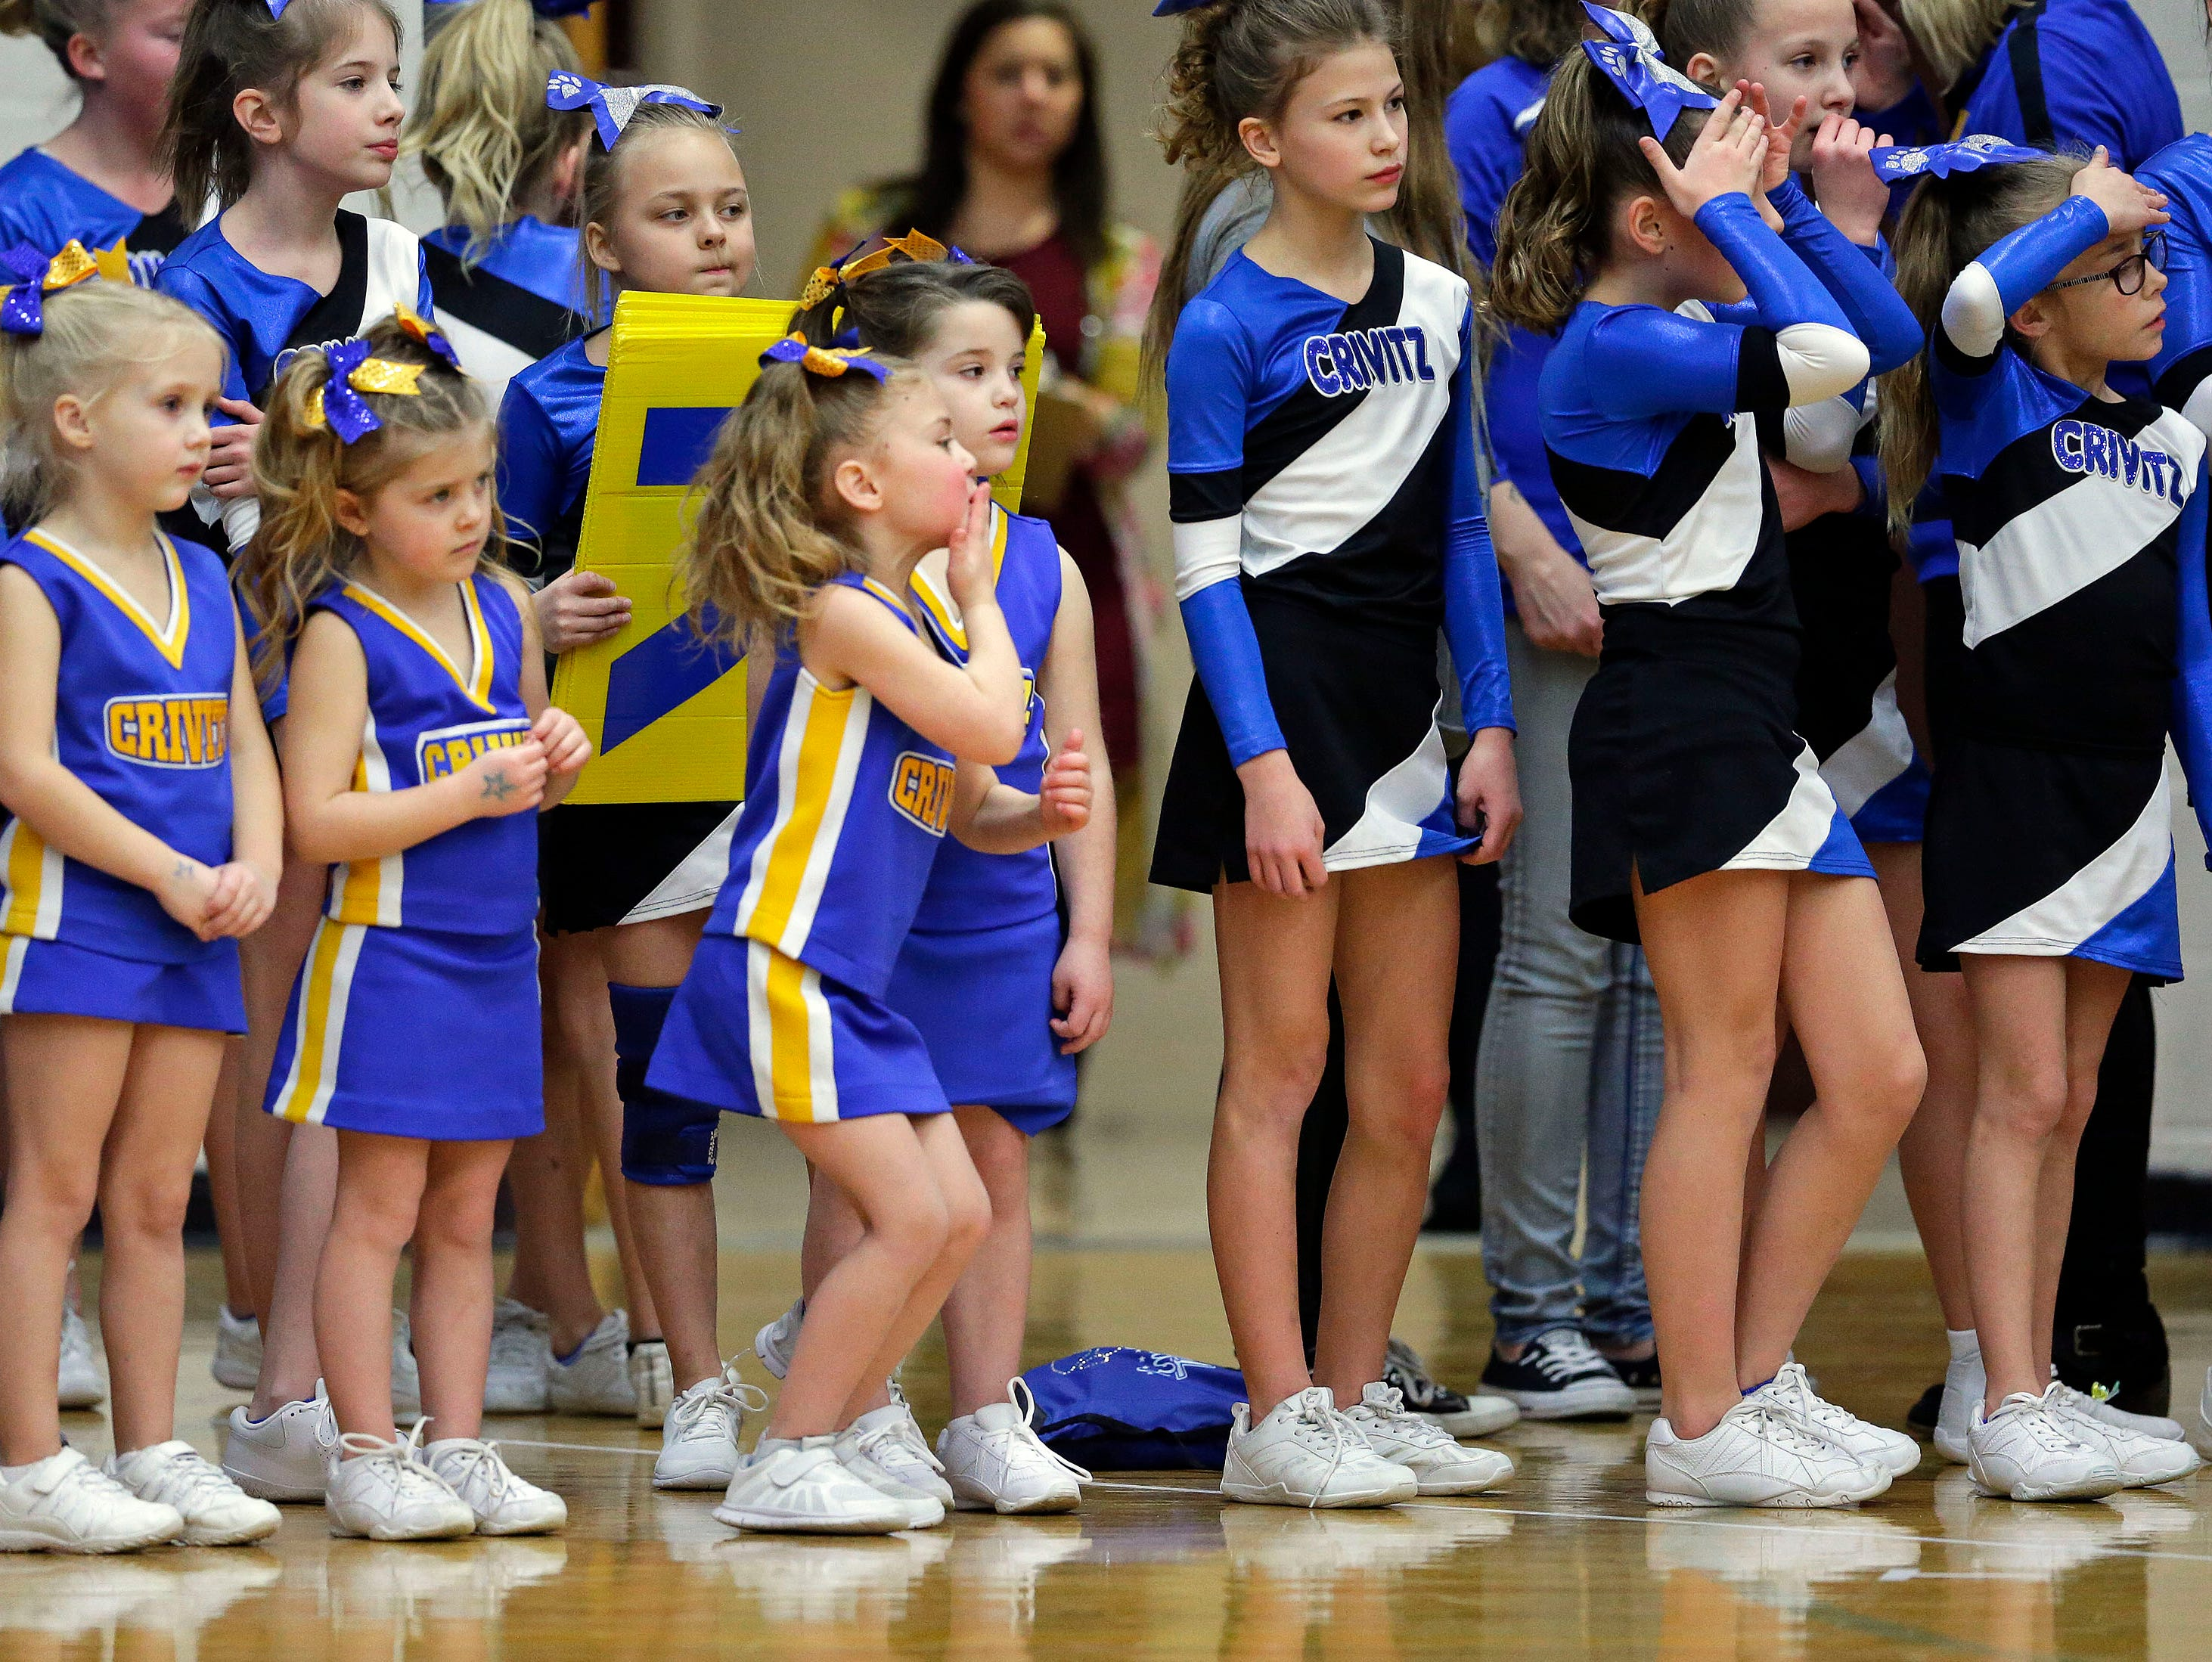 Brandy Klukas of Crivitz blows a kiss to her mother as the Lightning Bolt Explosion Cheer and Dance competition takes place Saturday, January 5, 2019, at Appleton North High School in Appleton, Wis. Ron Page/USA TODAY NETWORK-Wisconsin